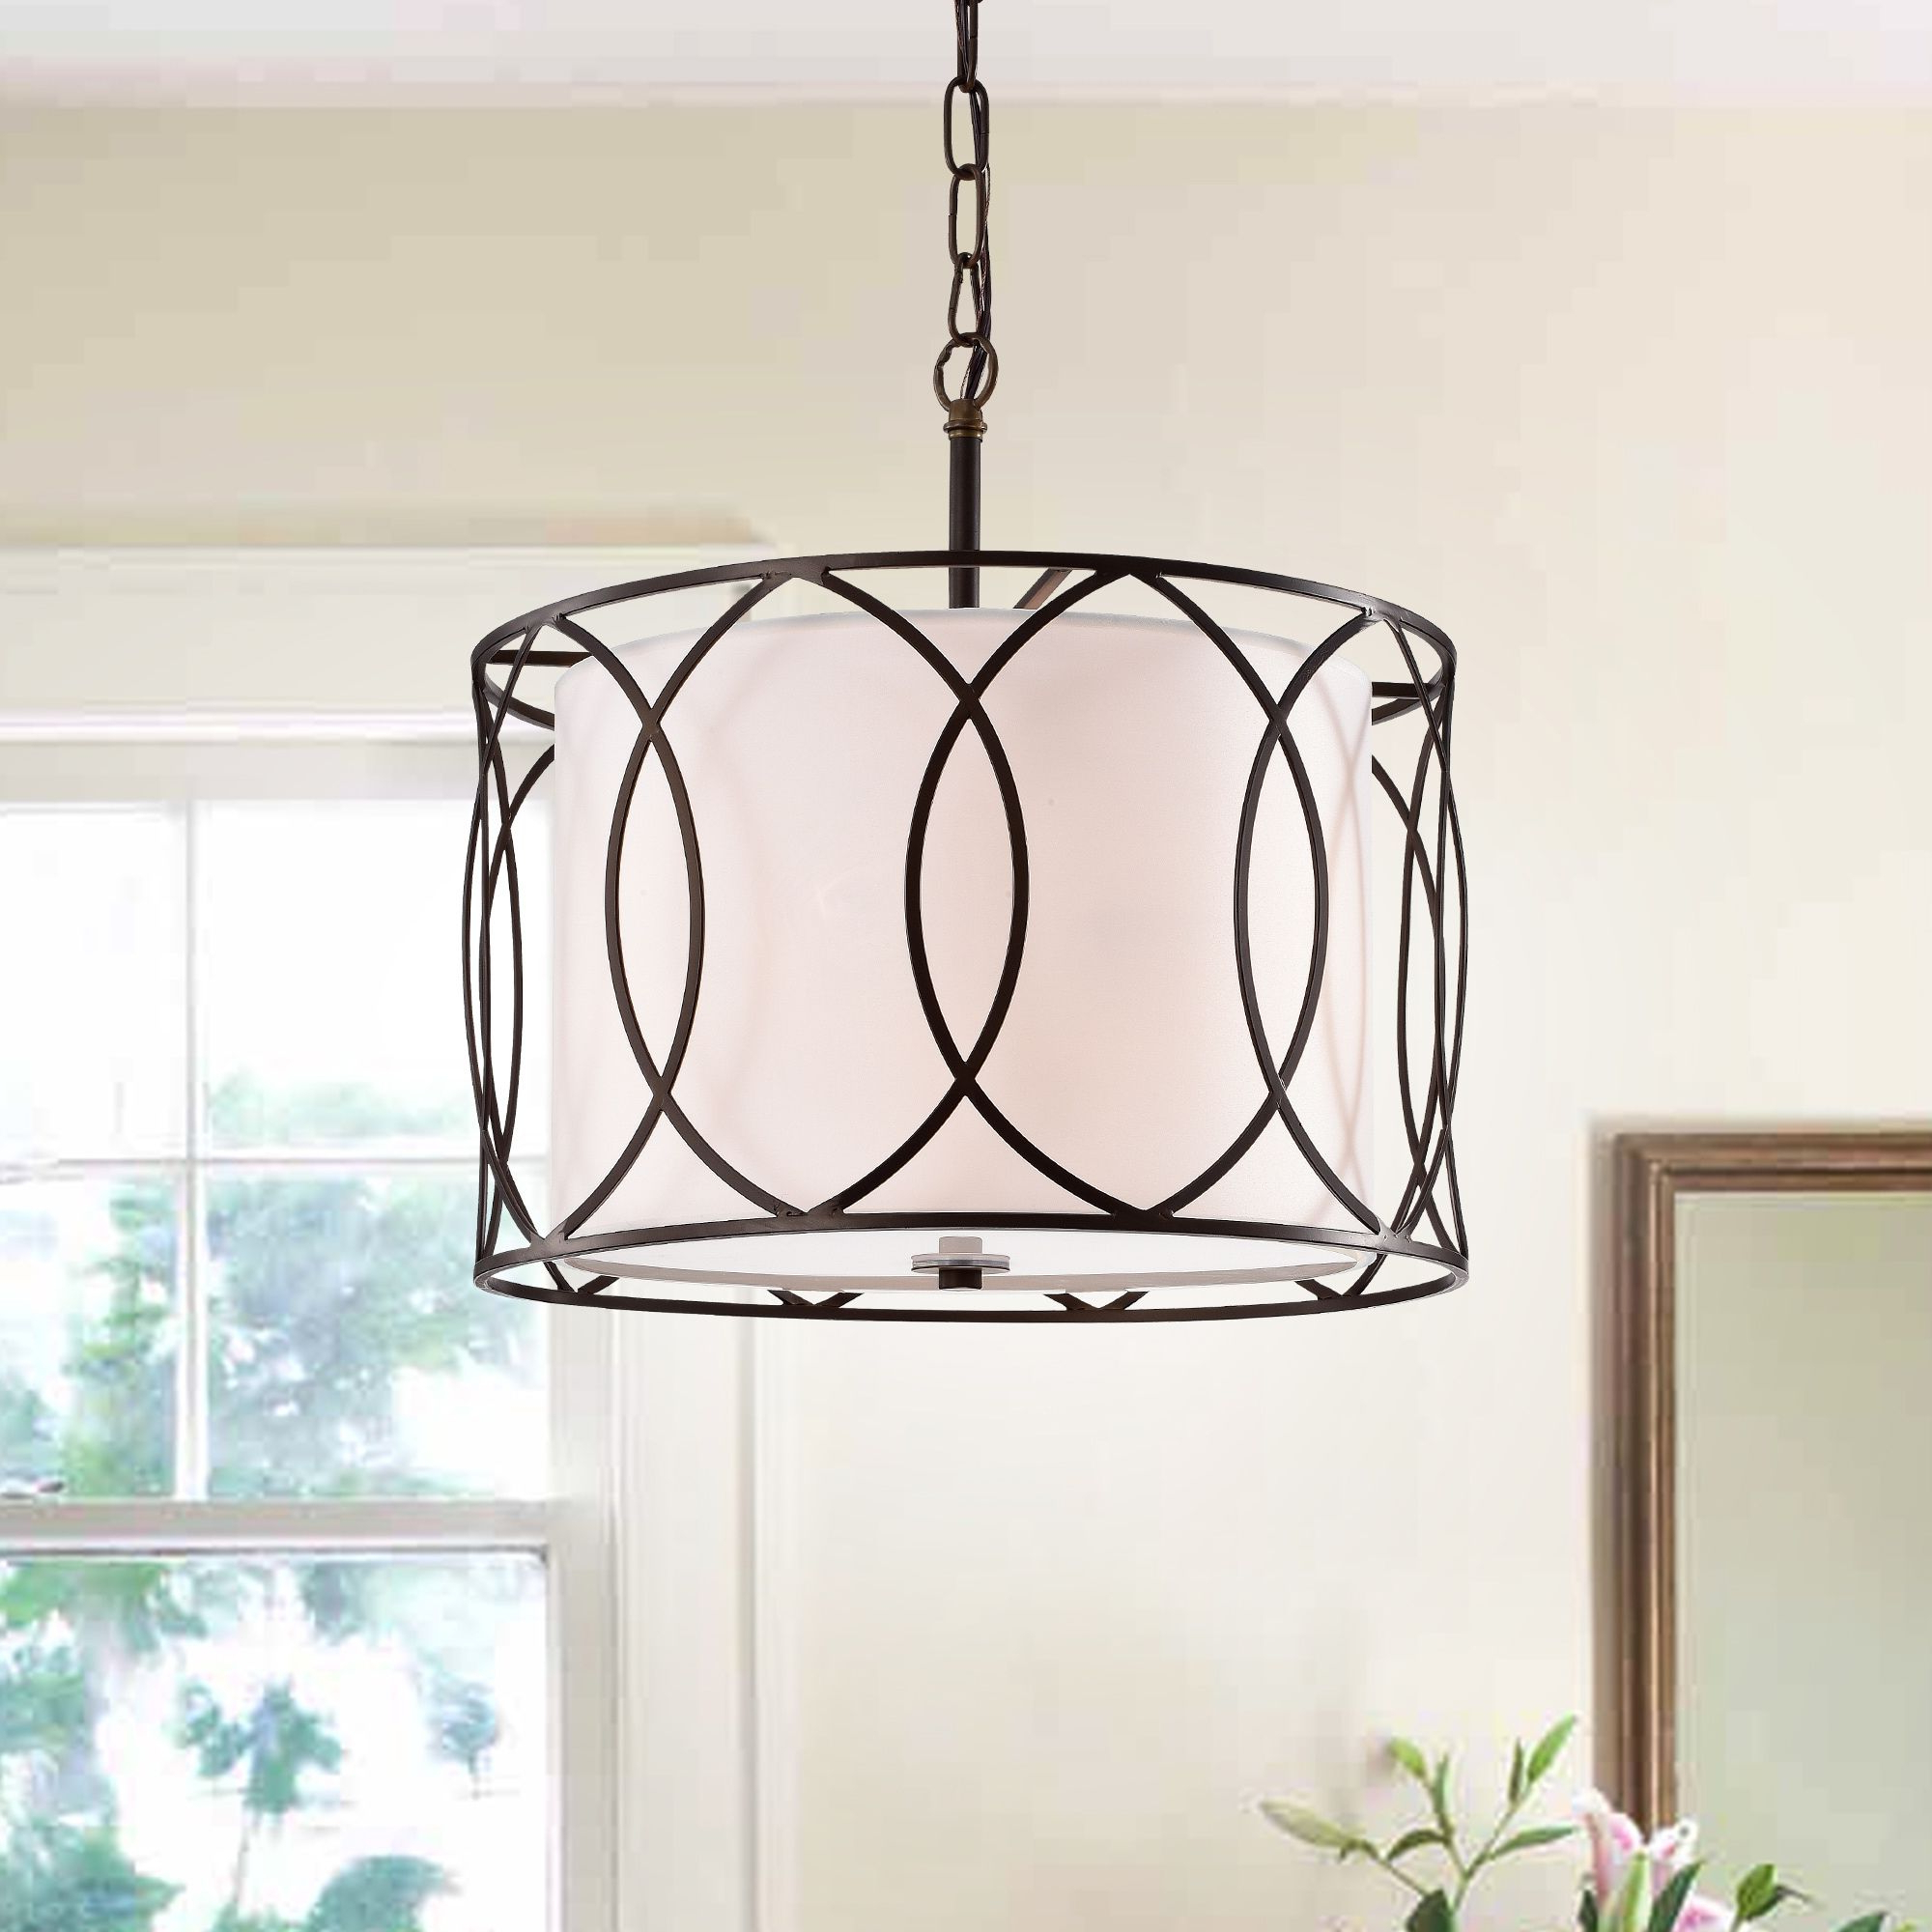 Most Recently Released Tadwick 3 Light Single Drum Chandeliers With Regard To Gisnao Antique Bronze 3 Light Caged Drum 16 Inch Pendant In (Gallery 13 of 20)